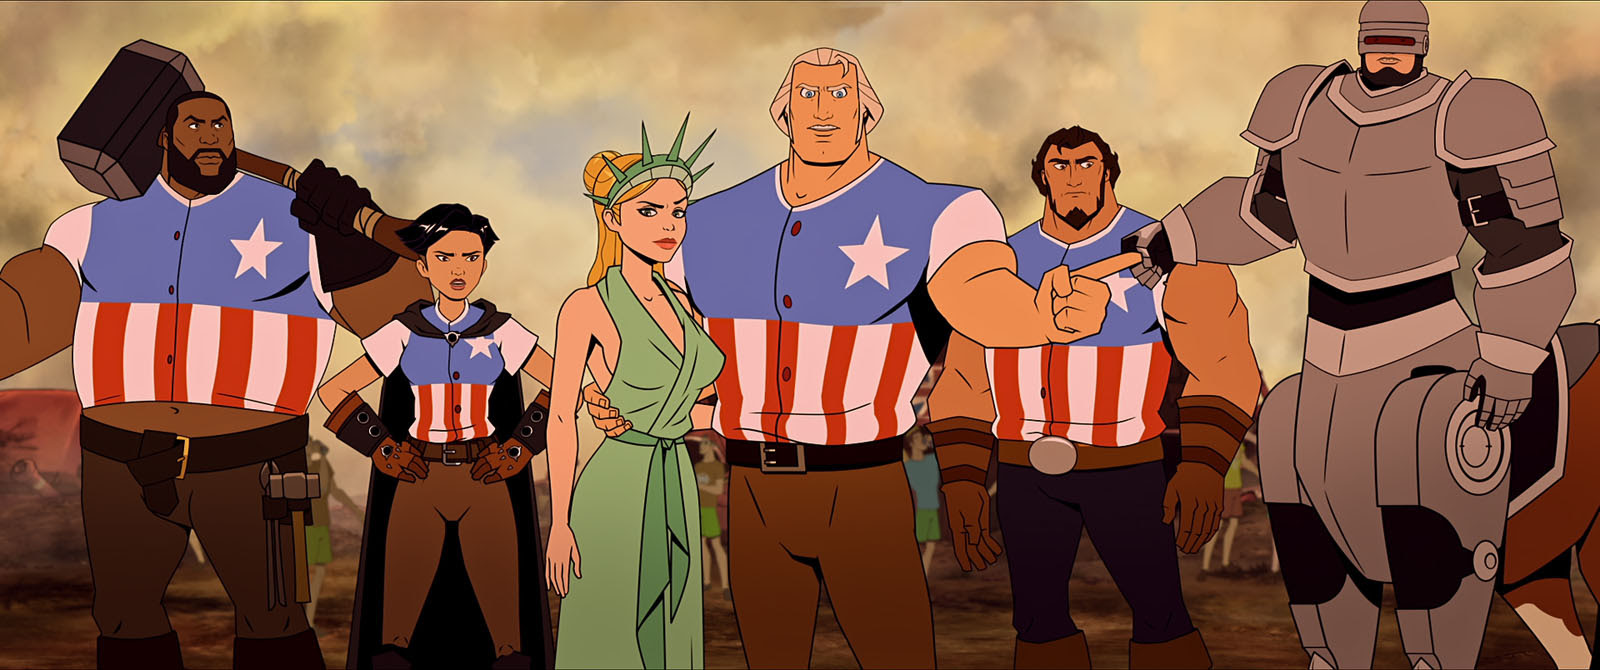 Judy Greer, Bobby Moynihan, Channing Tatum, Olivia Munn, Jason Mantzoukas, and Killer Mike in America: The Motion Picture (2021)